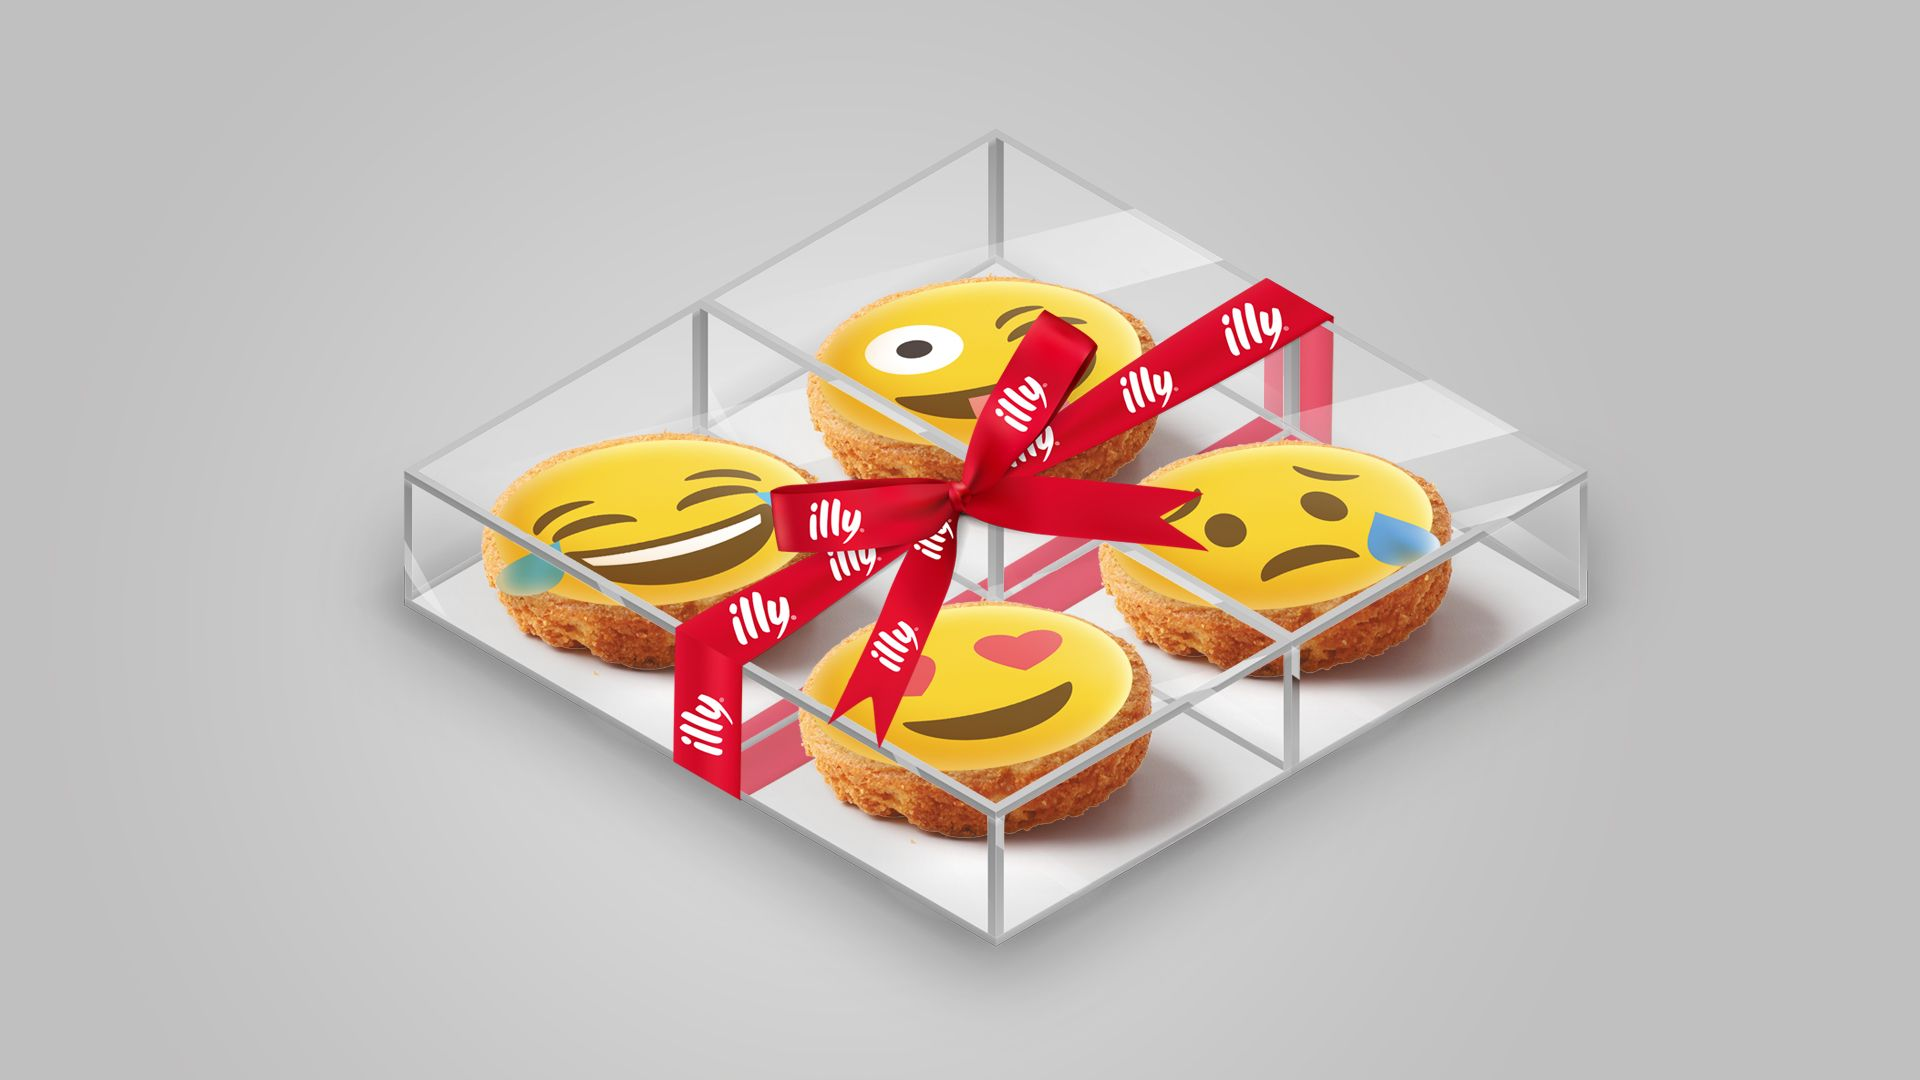 01-promo-event-illy-illymoticons.jpg